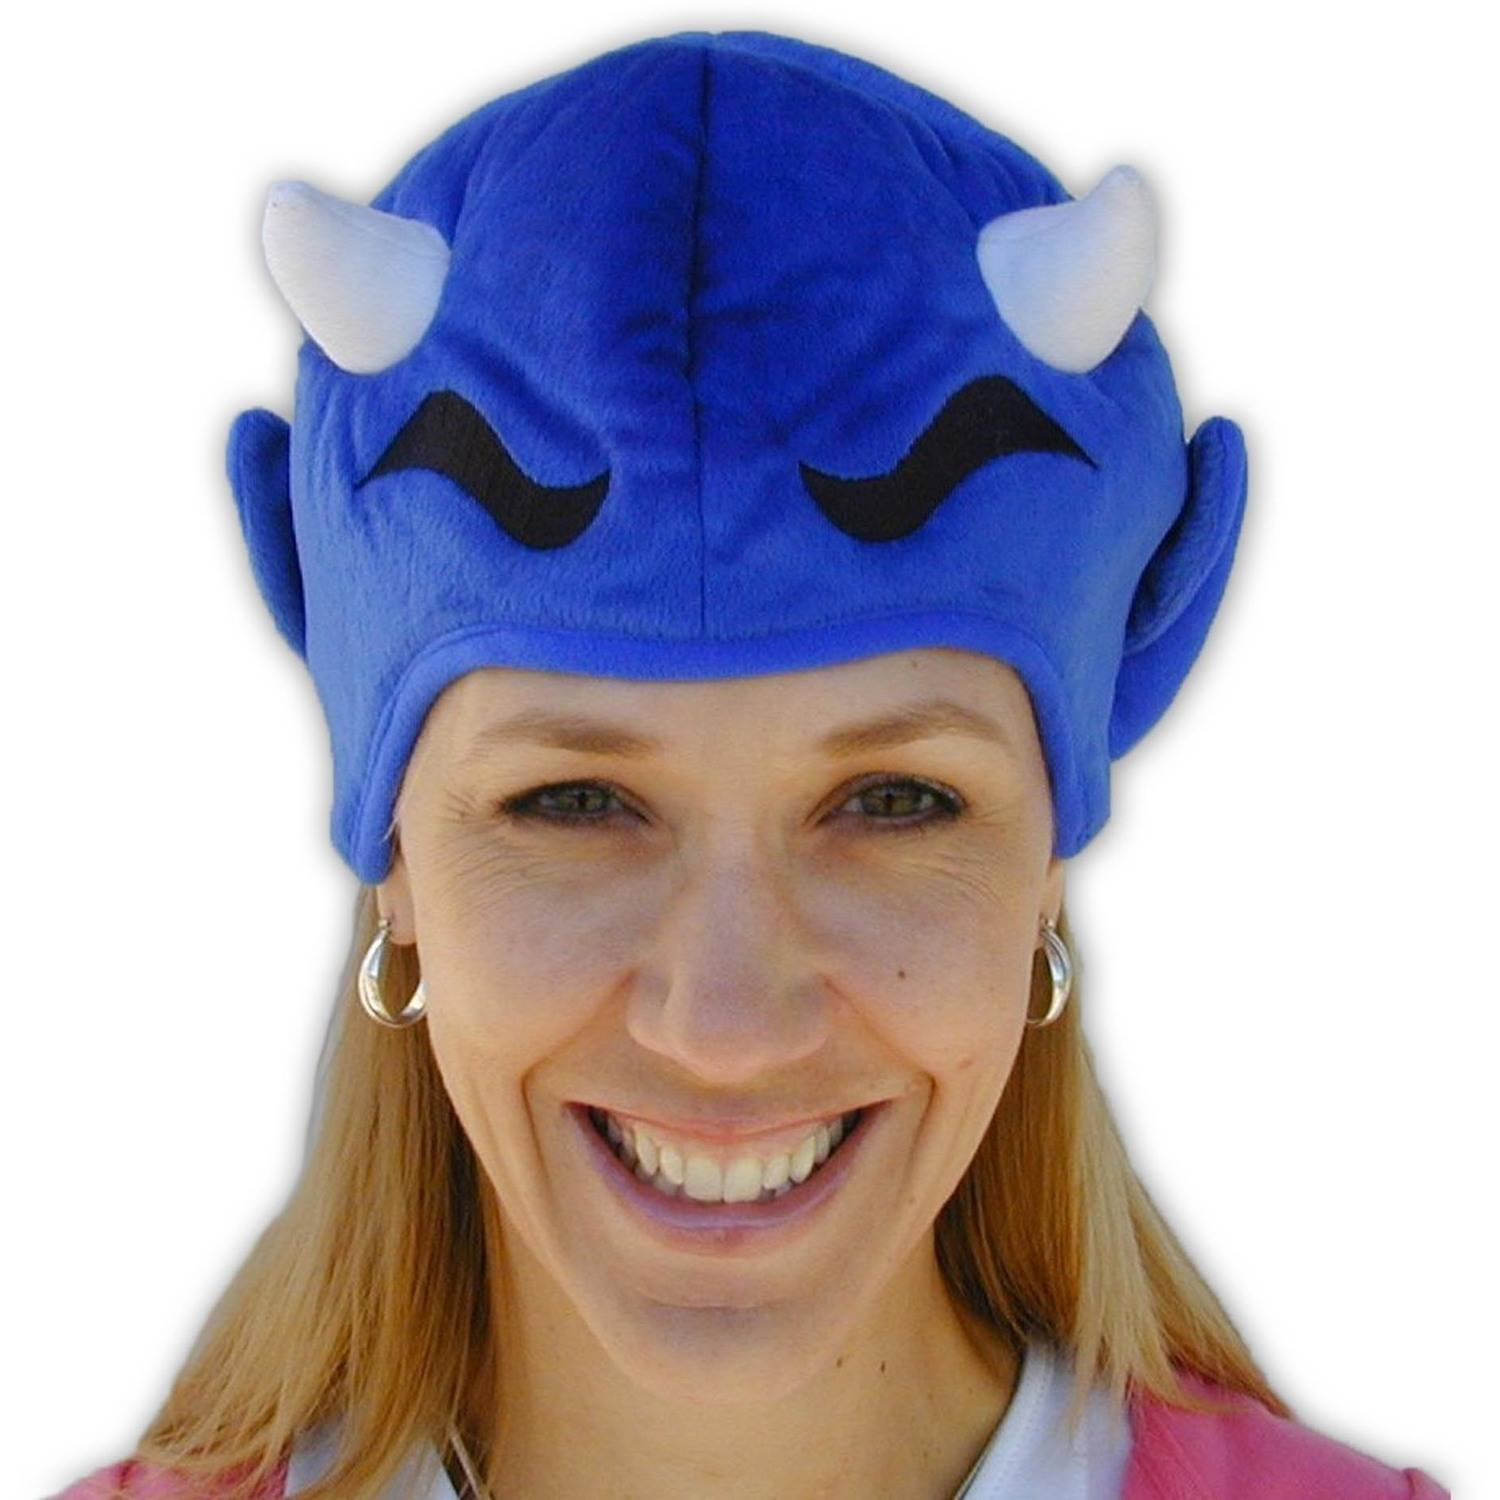 010-38 Duke Blue Devils Hat